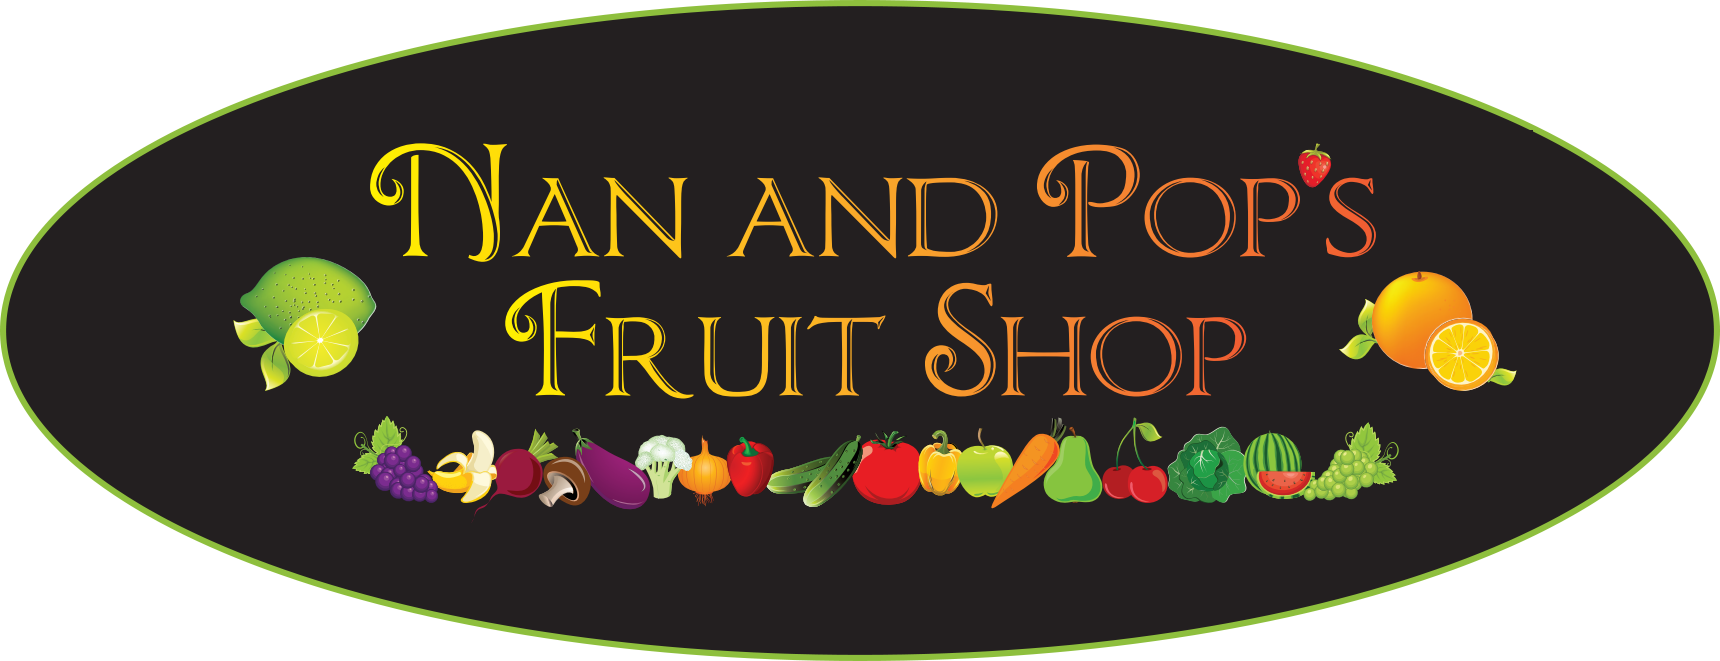 Delivery Van - Nan and Pop's Fruit Shop